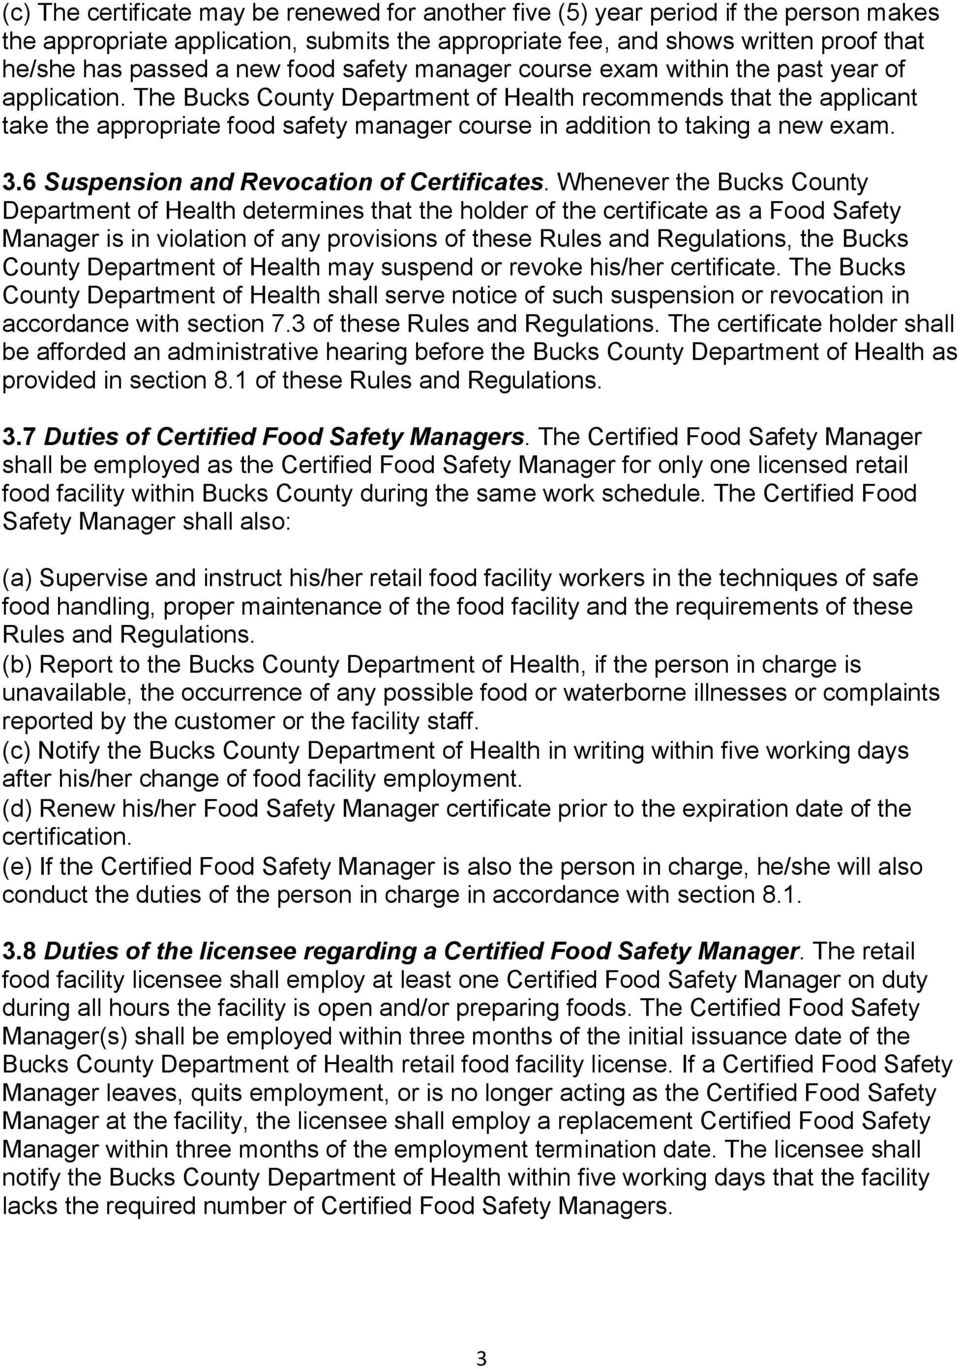 The Bucks County Department of Health recommends that the applicant take the appropriate food safety manager course in addition to taking a new exam. 3.6 Suspension and Revocation of Certificates.